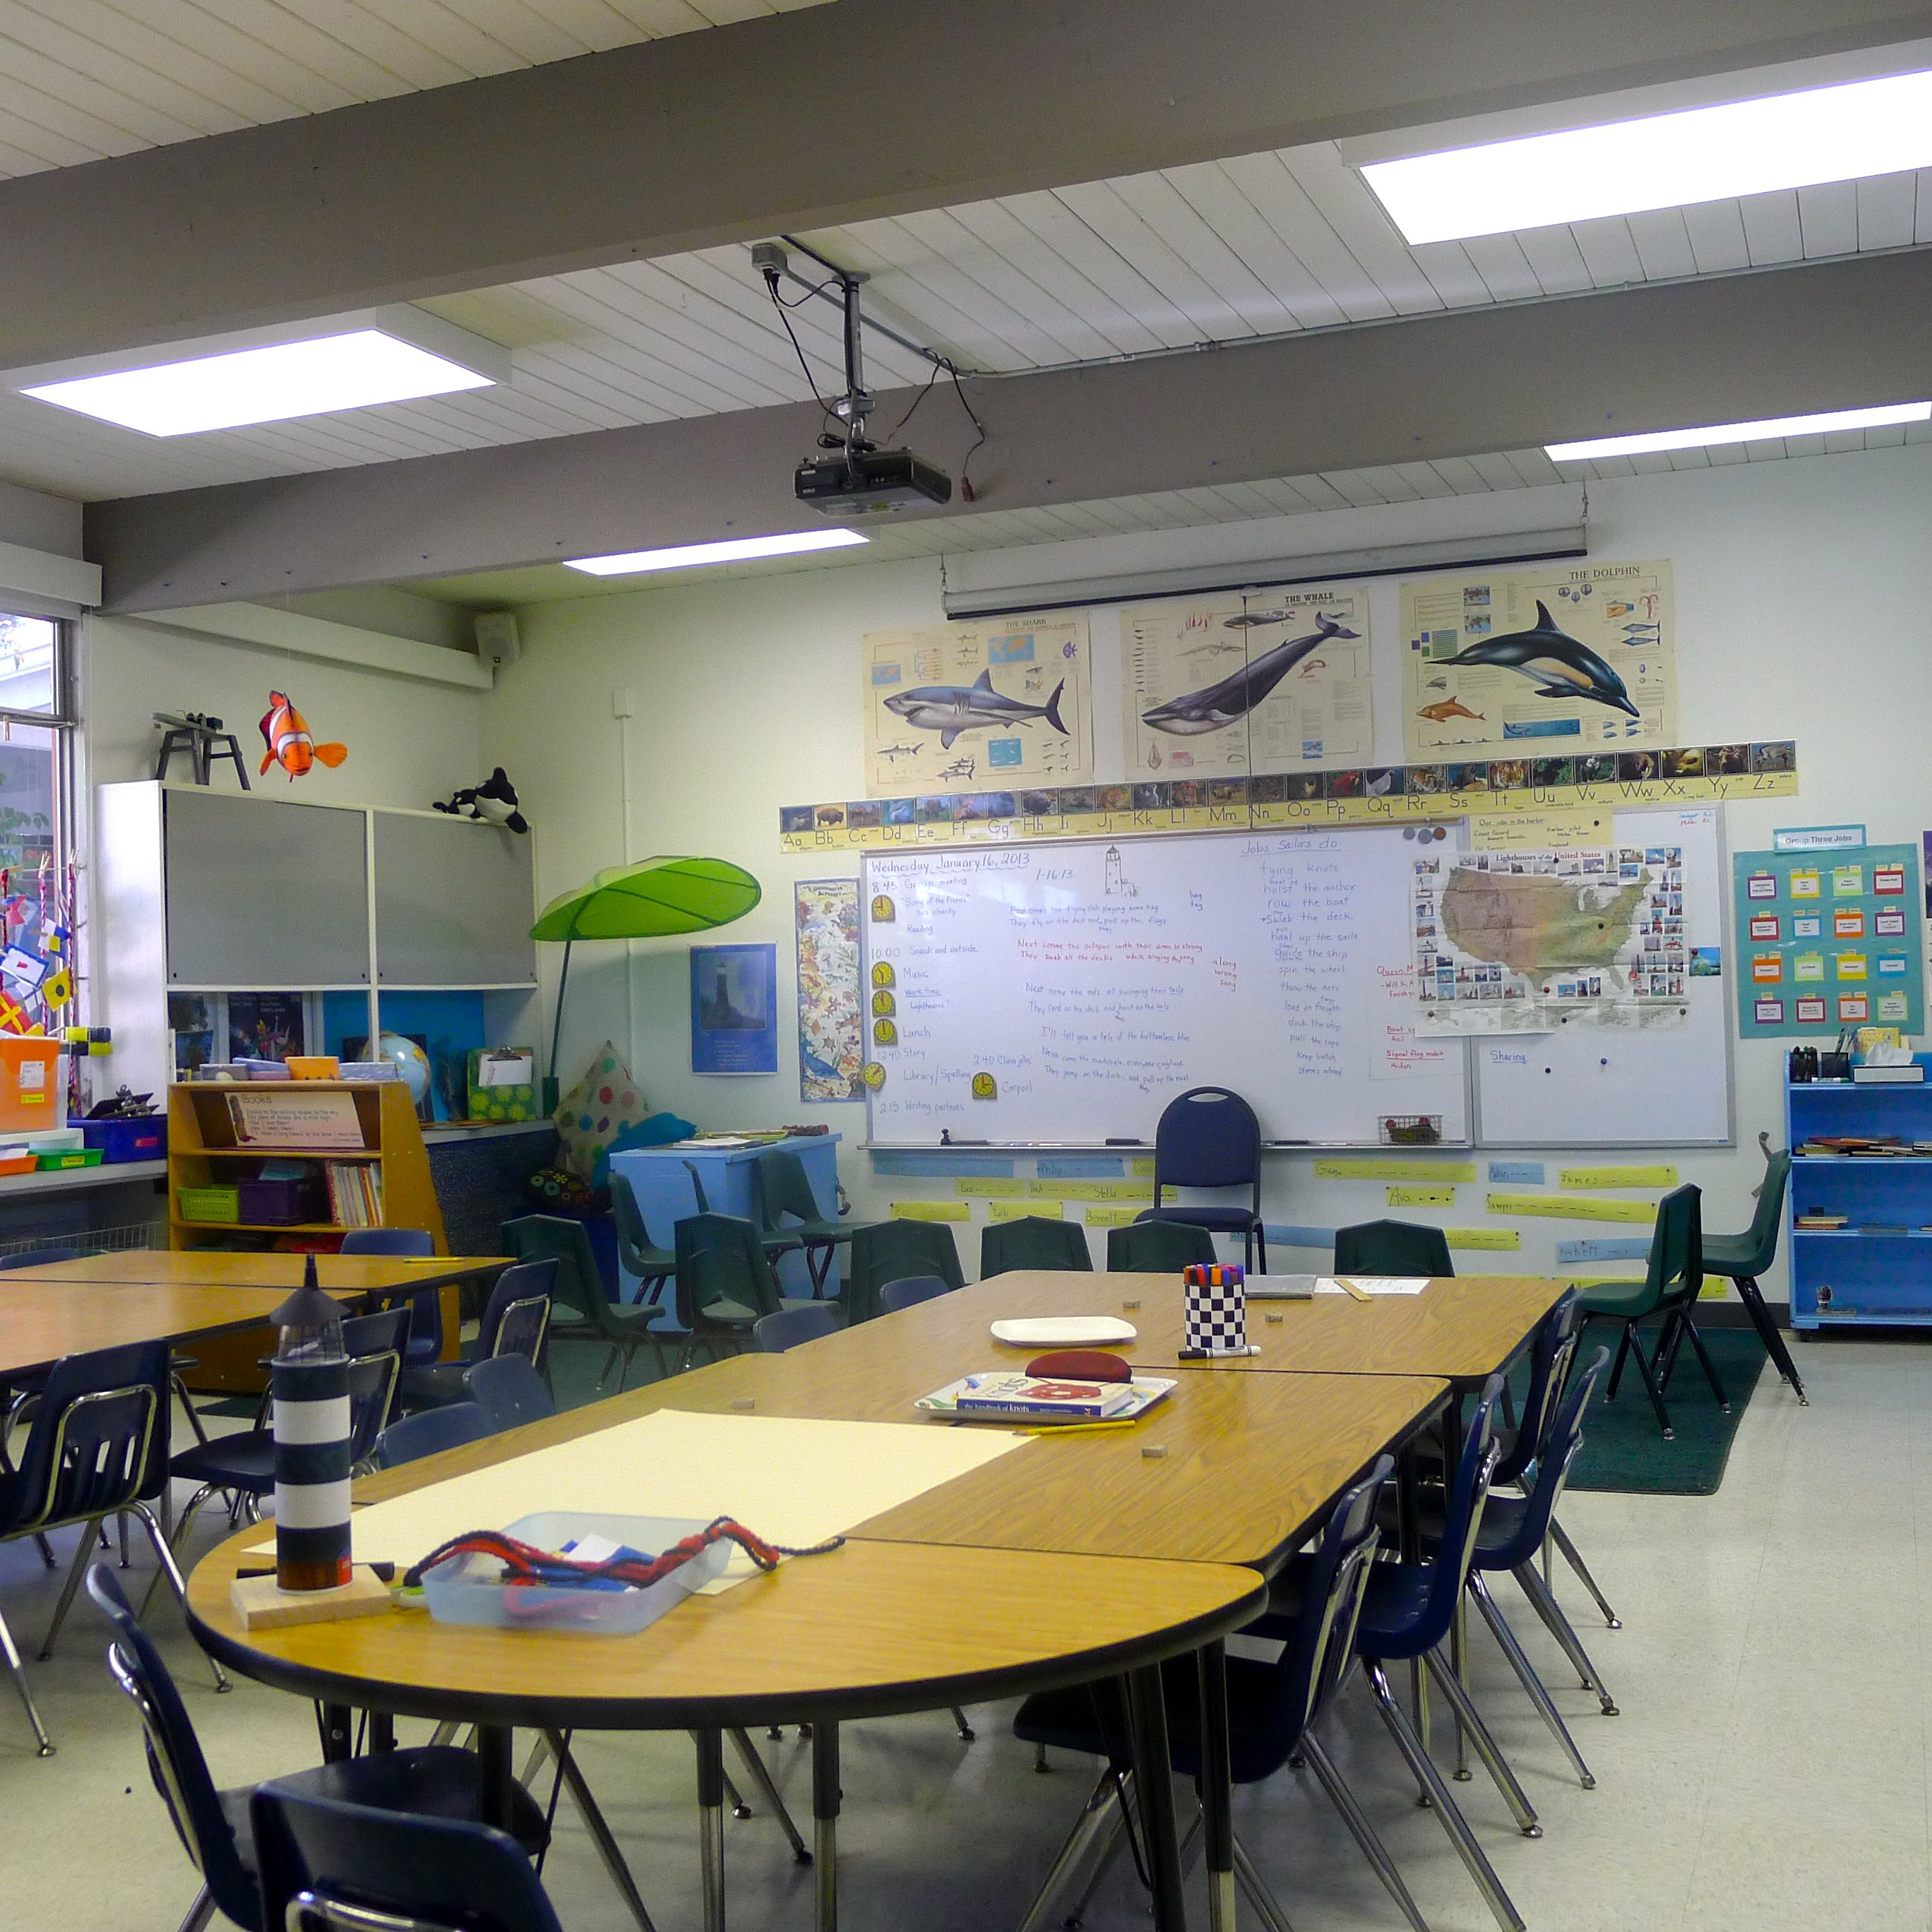 Group 3 classroom